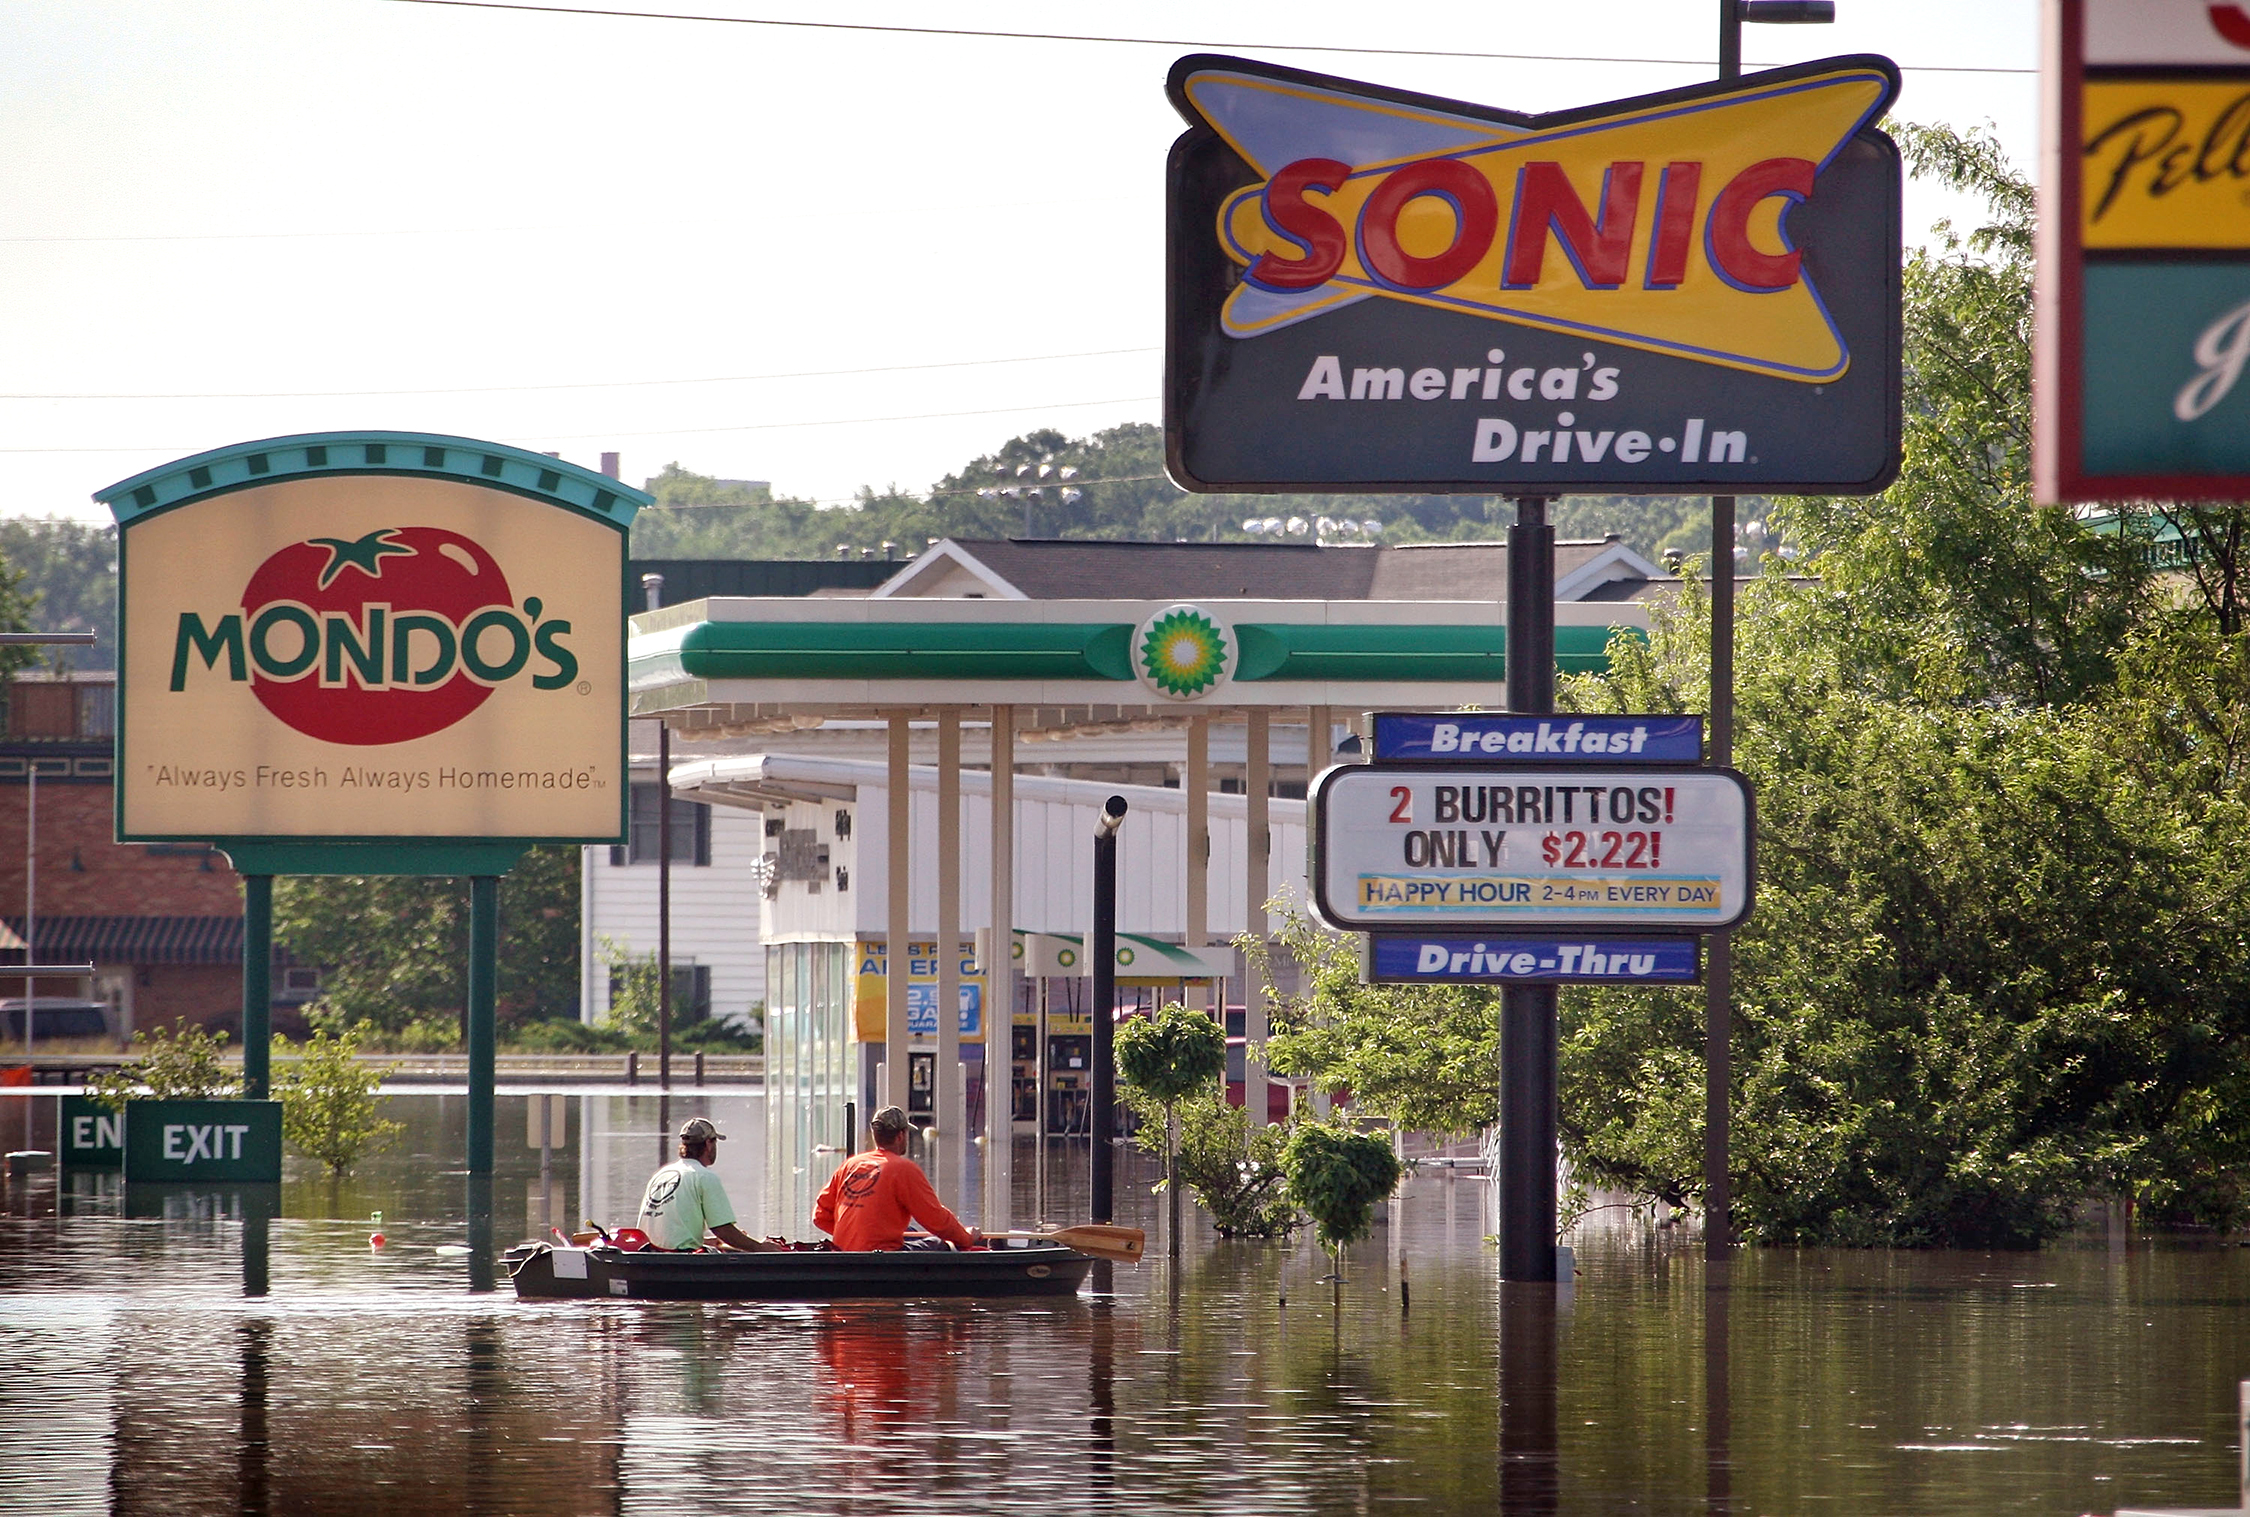 CORALVILLE, IA - JUNE 15: Two men row a boat to thru a flooded area of town known as the strip June 15, 2008 in Coralville, Iowa. The Iowa River is expected to crest in Coralville and Iowa City at record levels Tuesday. (Photo by Scott Olson/Getty Images)